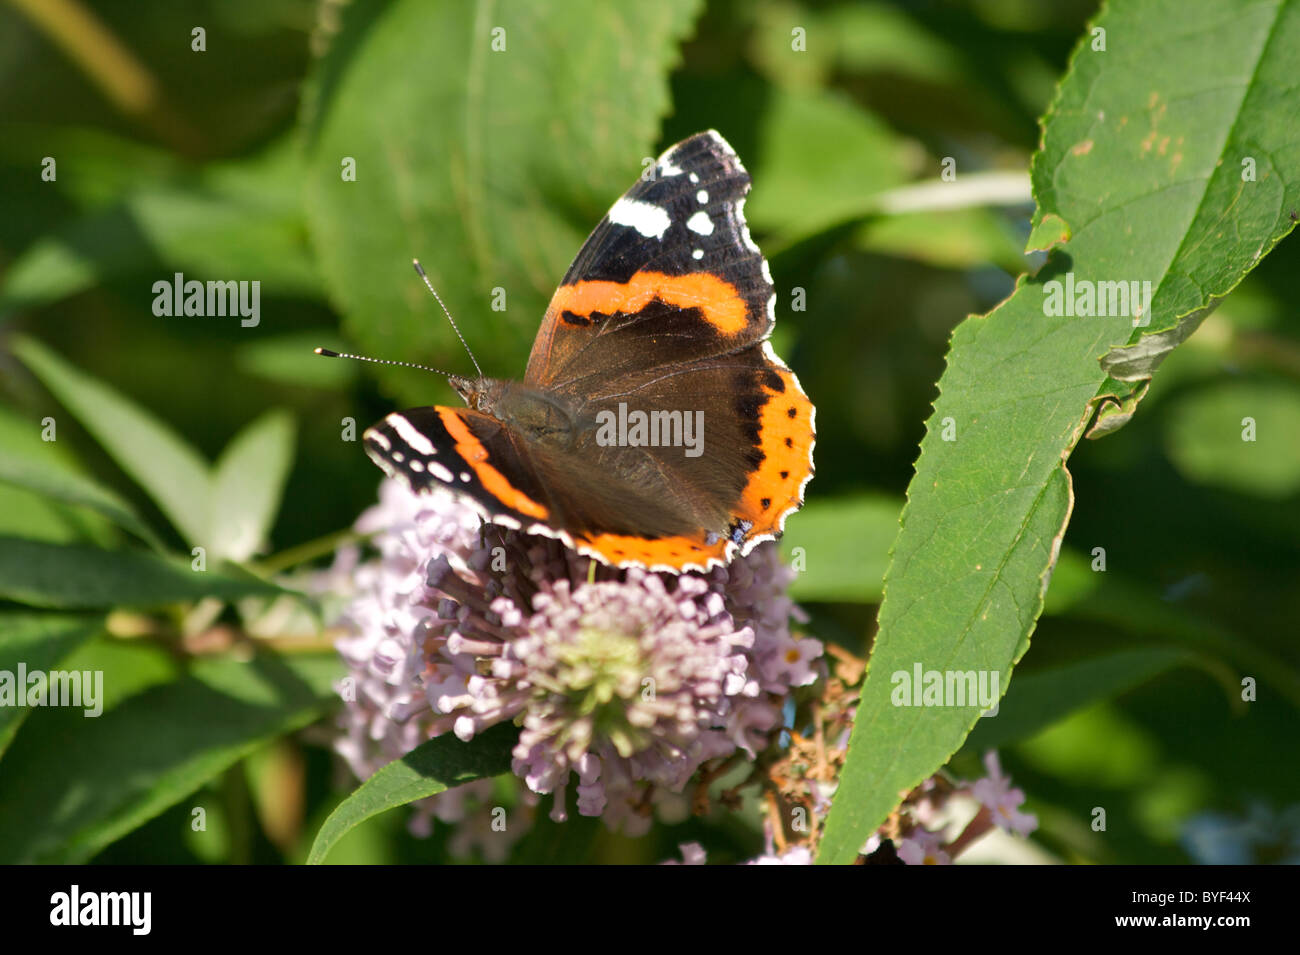 Red Admiral butterfly (Vanessa atalanta) on Buddlea flowers (Buddleia davidii) also known as 'butterfly bush' - Stock Image